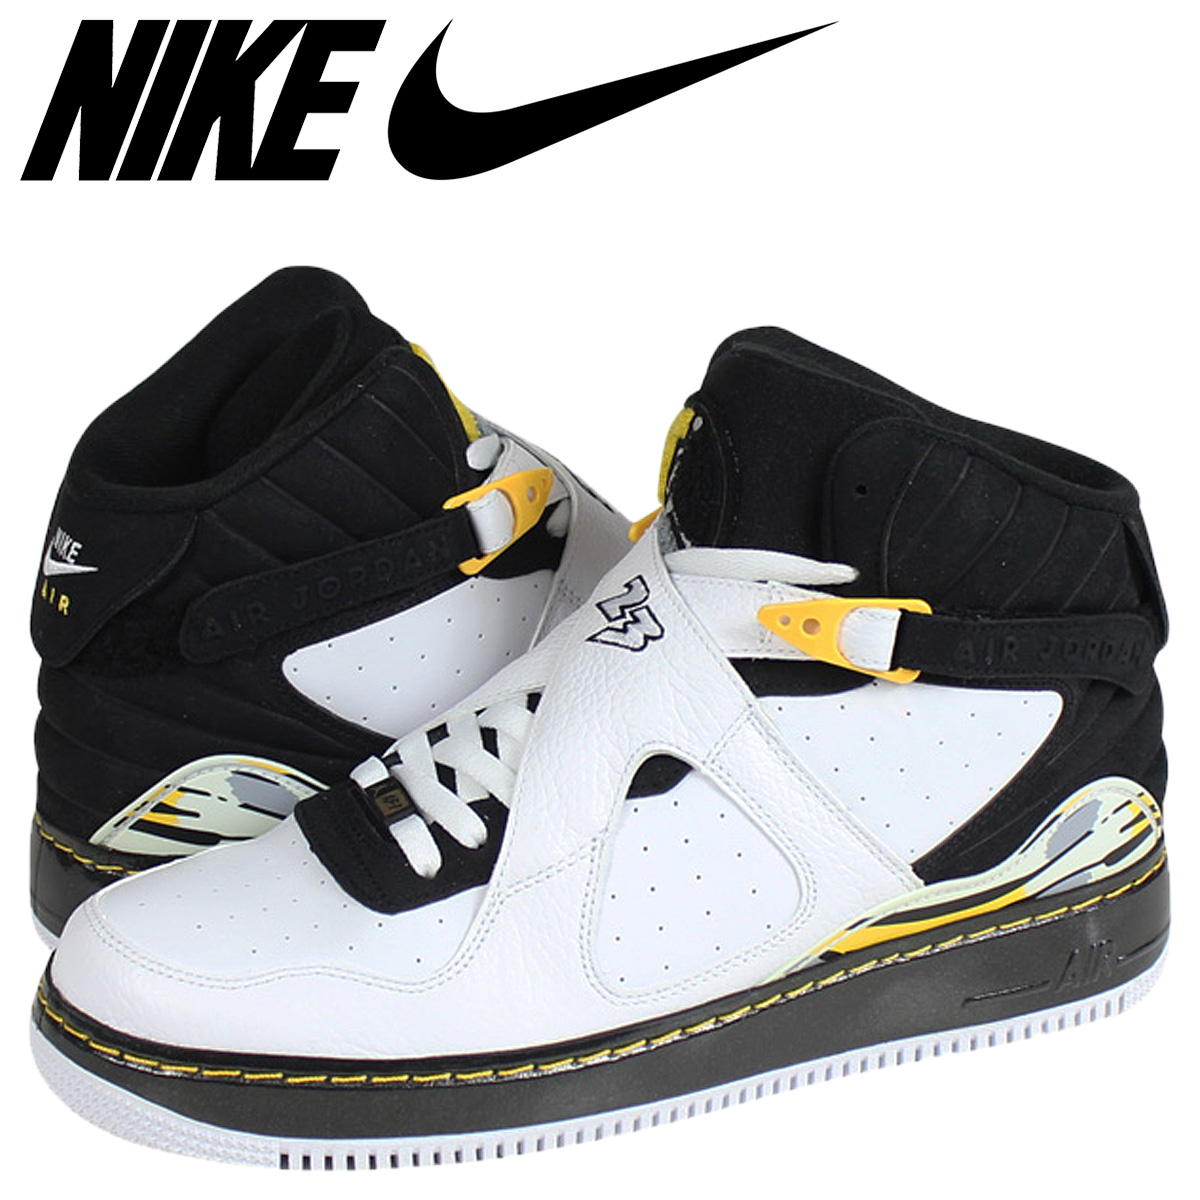 sneakers for cheap 5ddc8 c4c55 Product Information